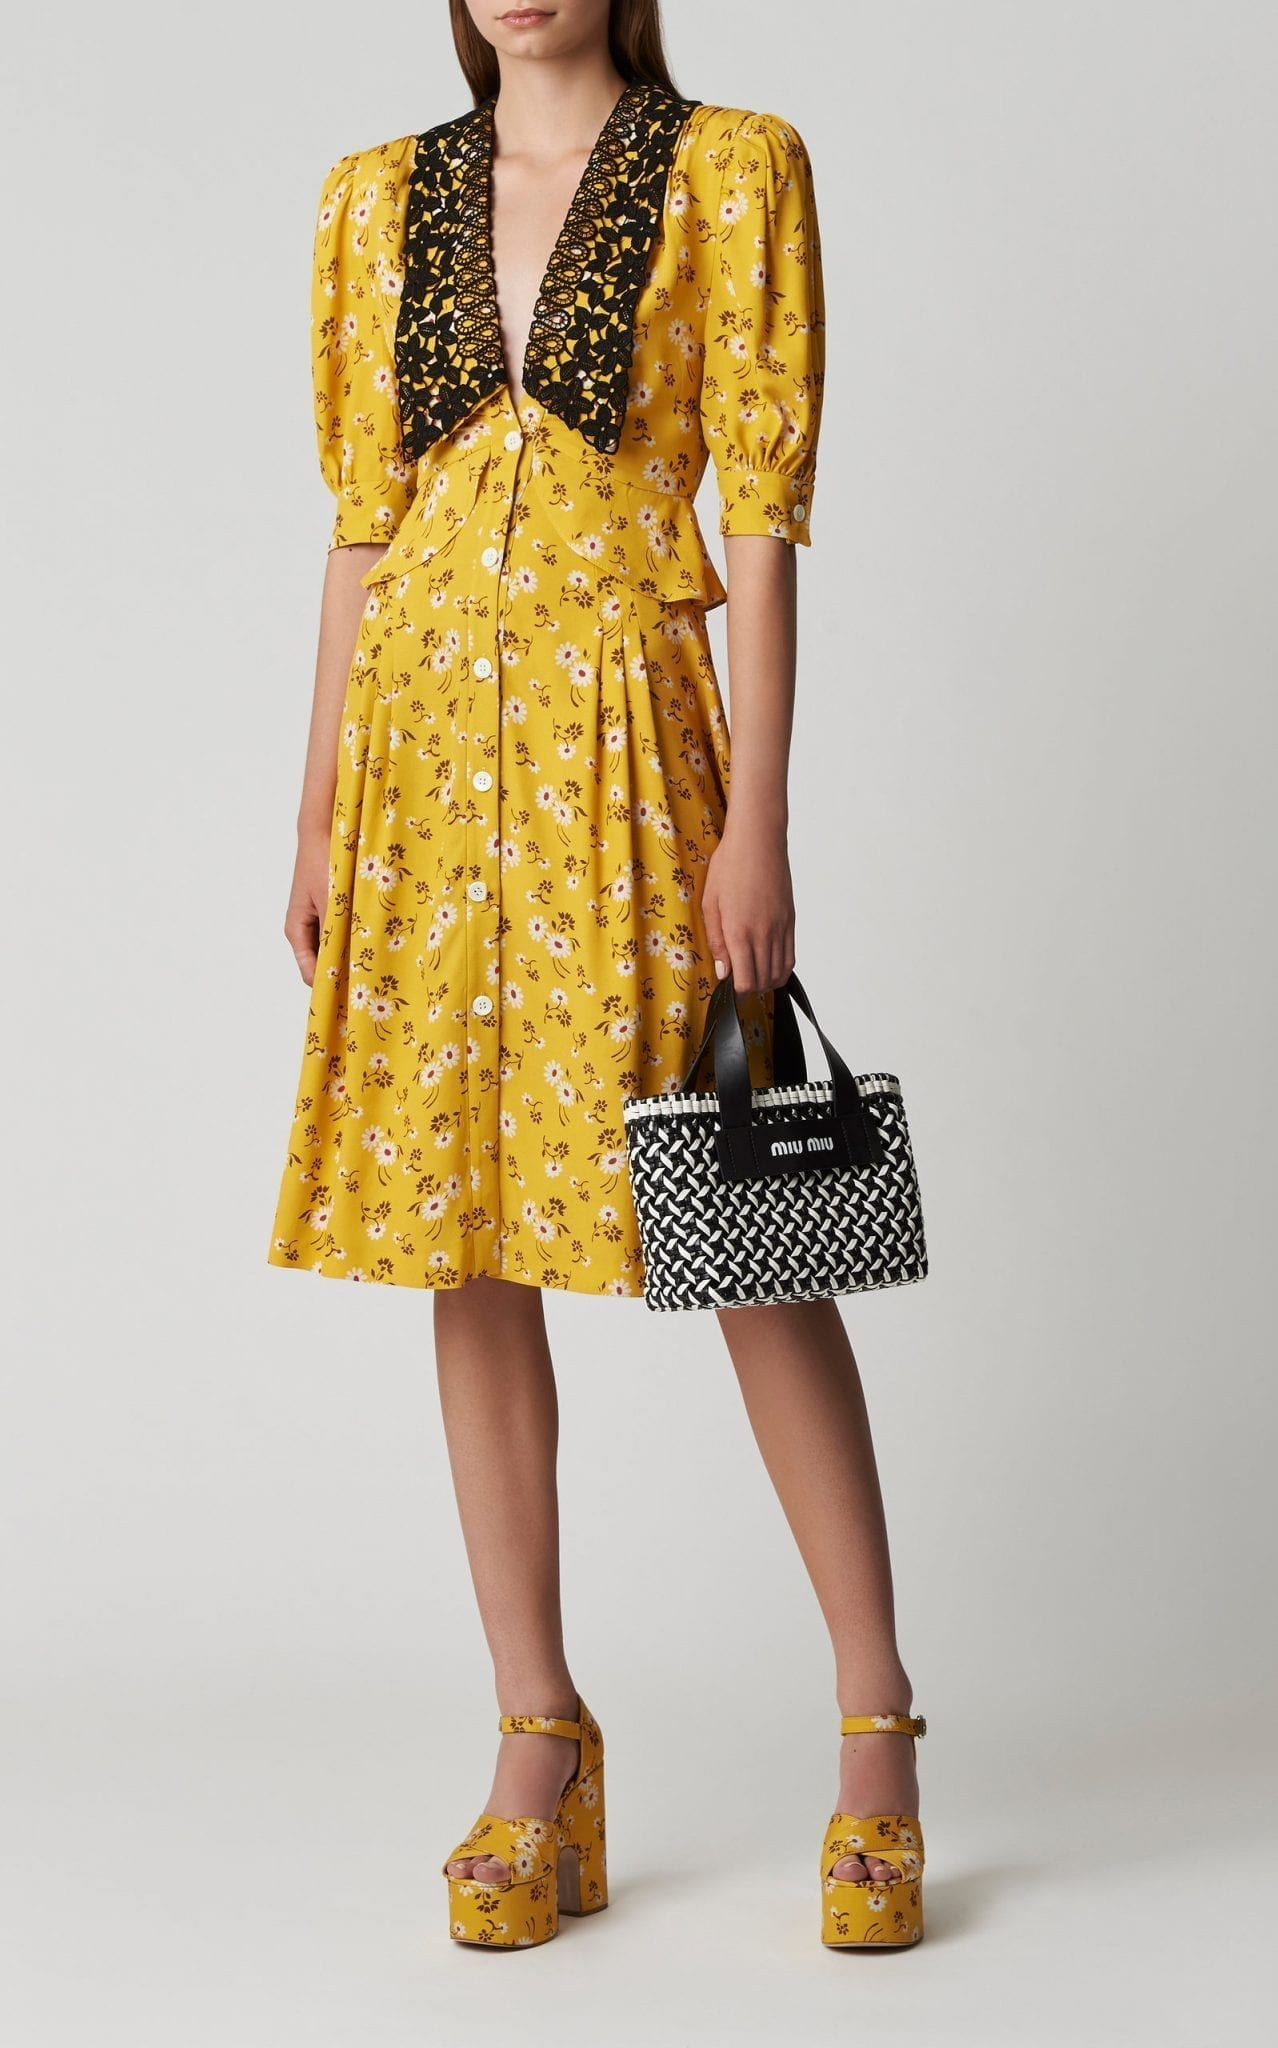 MIU MIU Printed Peplum Midi Dress